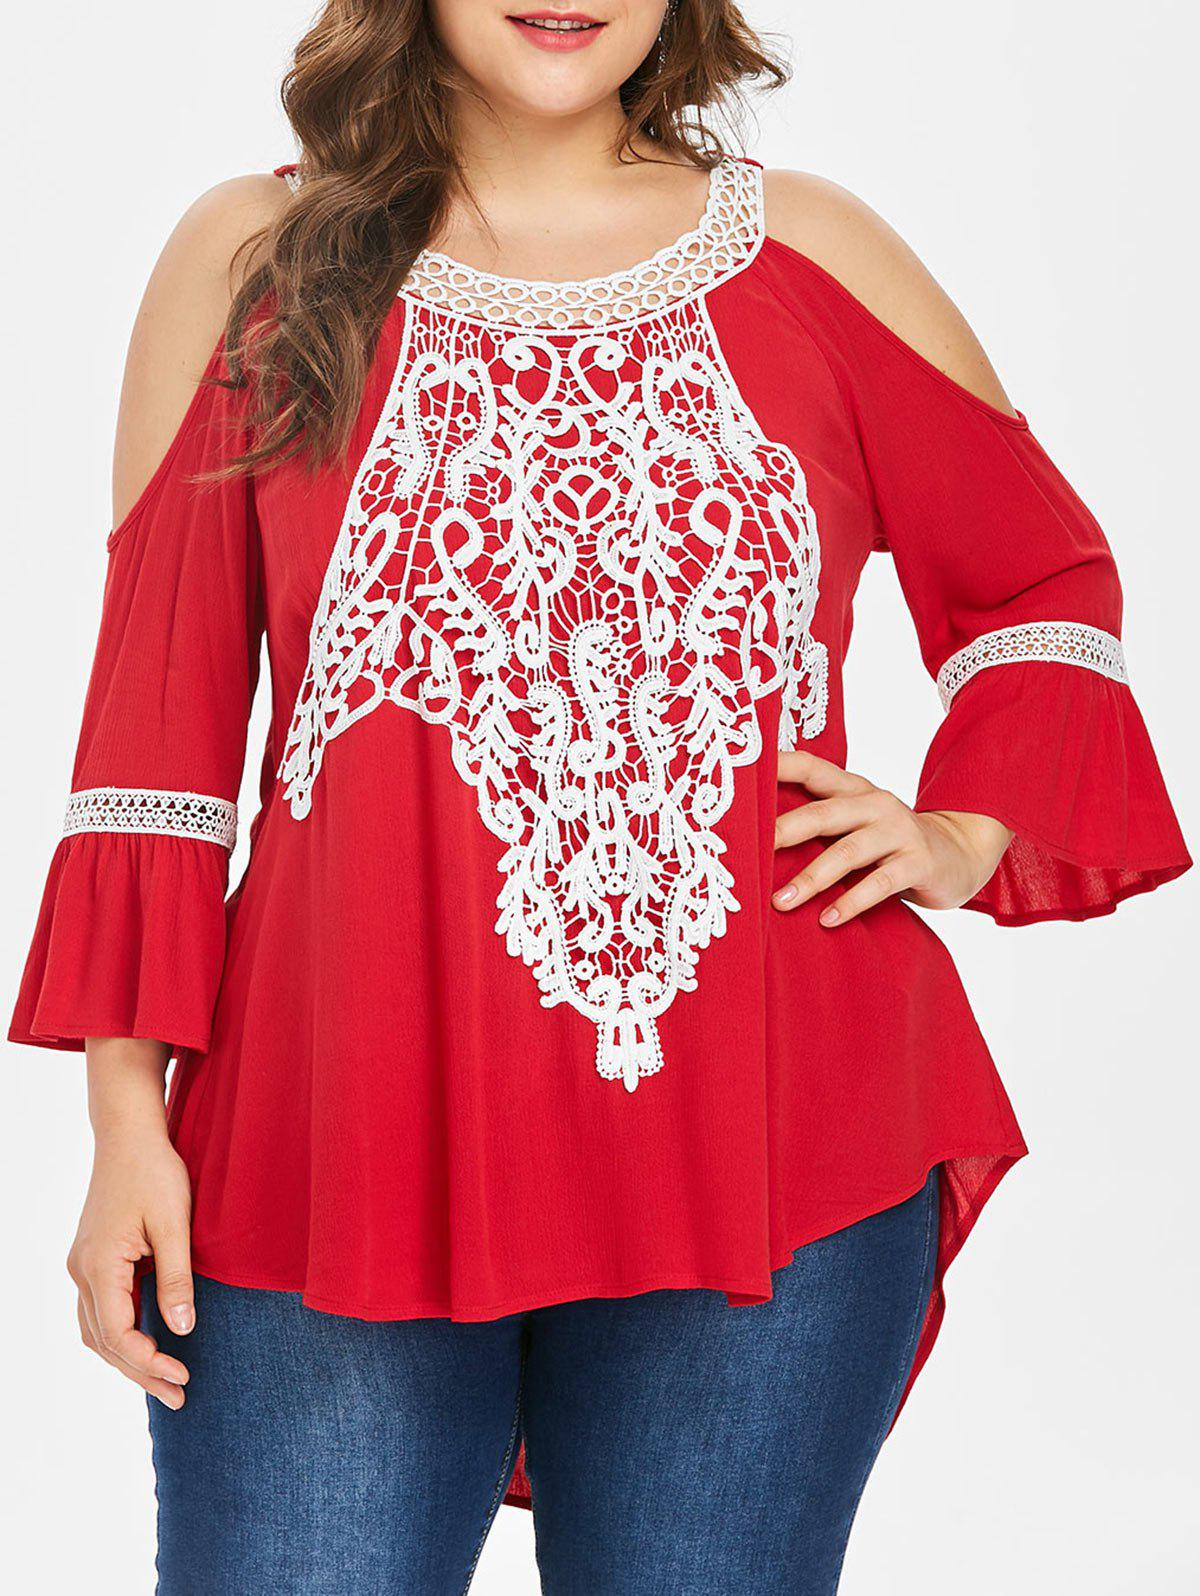 a59f8723c3309 64% OFF   2019 Plus Size Flare Sleeve Cold Shoulder Blouse